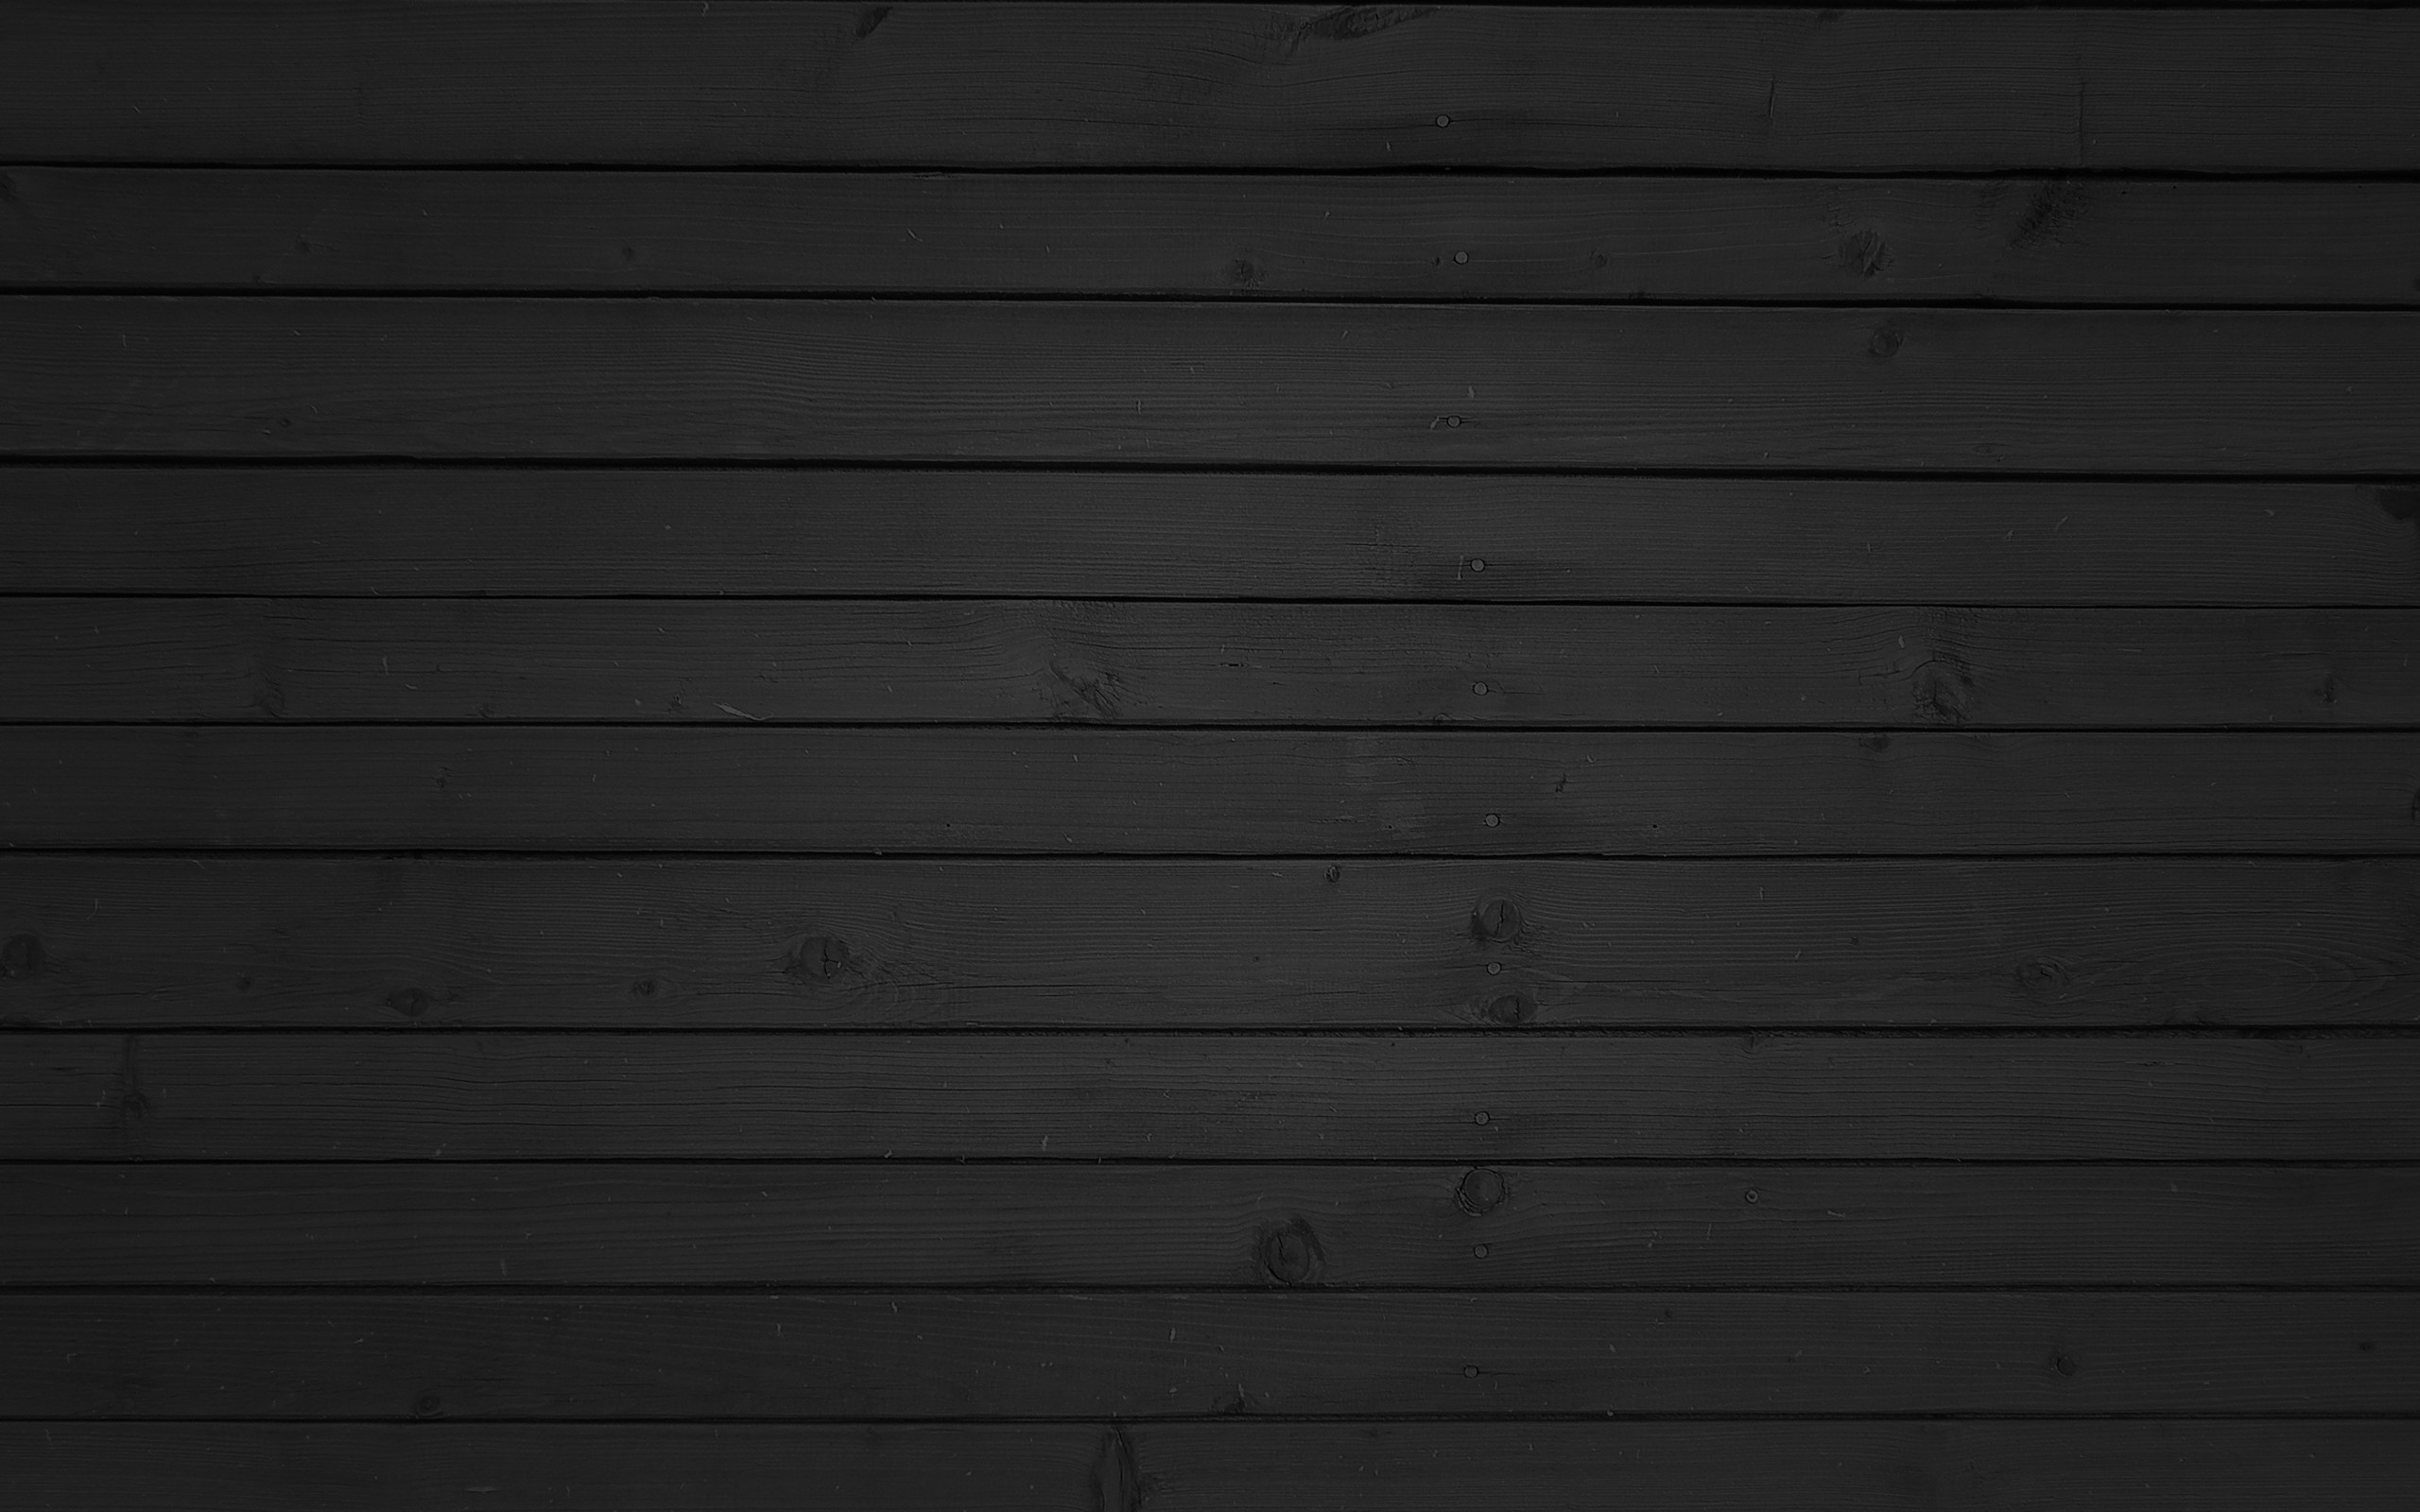 Black Wood Texture Wallpaper Free Download For #8518 Wallpaper … |  Download Wallpaper | Pinterest | Backgrounds free, Black backgrounds and  Wallpaper free …